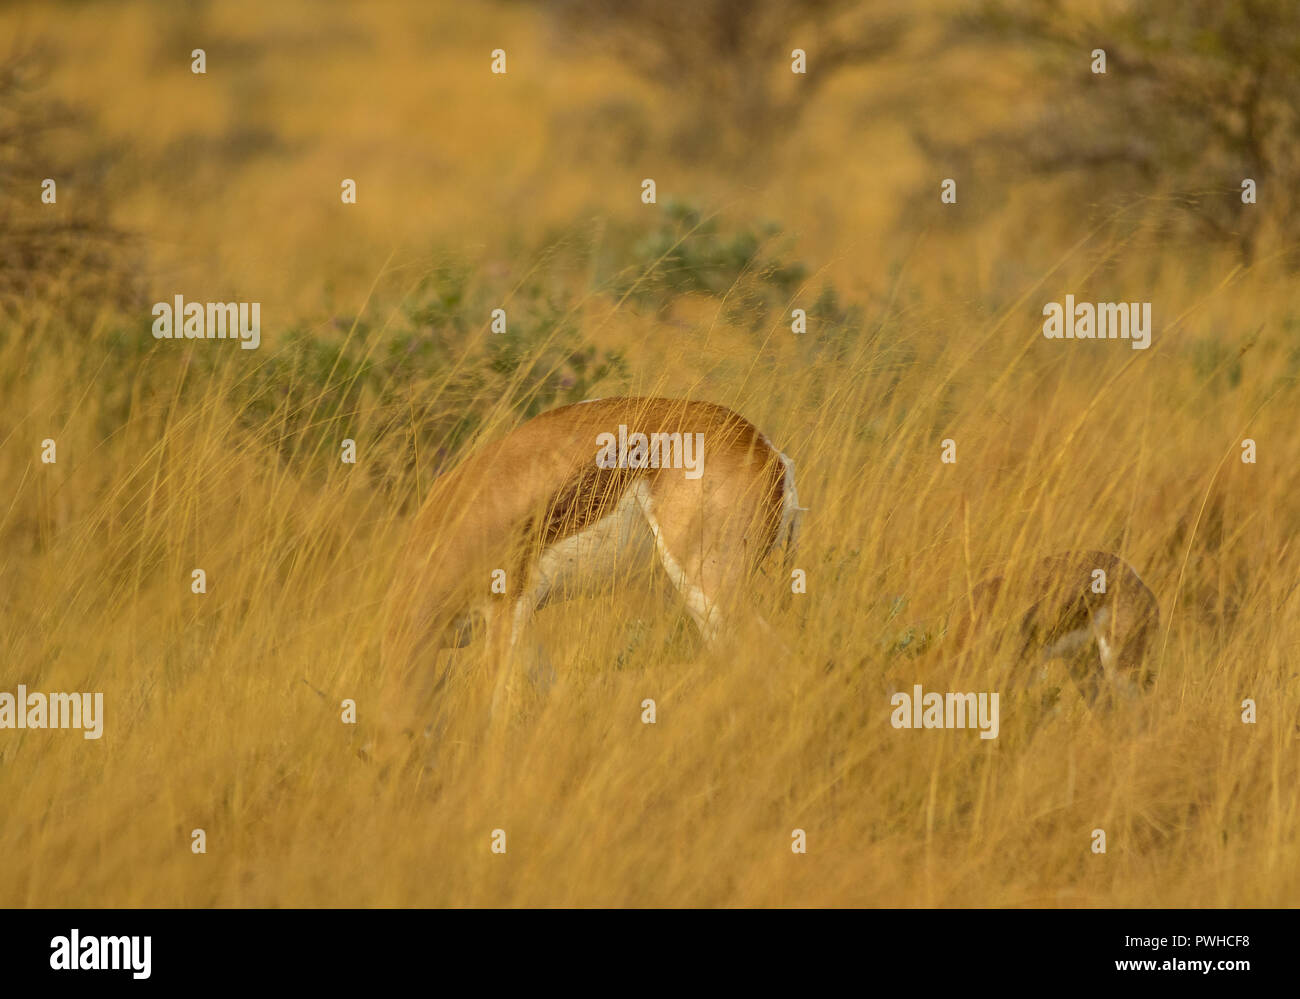 A springbok ewe and calf well hidden in the tall grass in the African bush image with copy space in landscape format - Stock Image